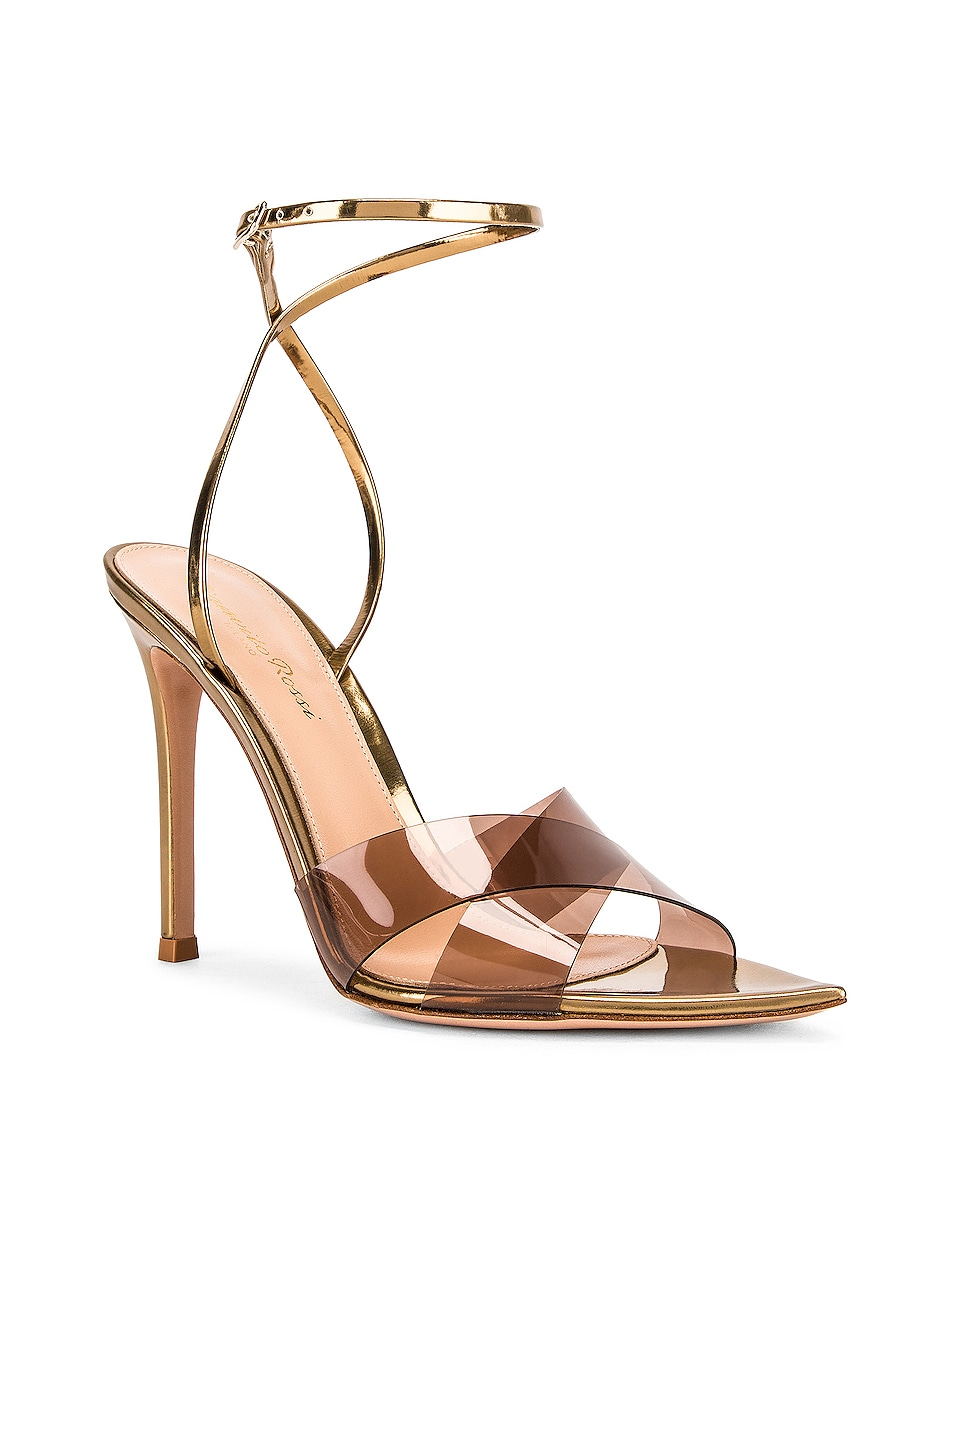 Image 2 of Gianvito Rossi Stark Plexi Ankle Strap Heels in Blush & Gold